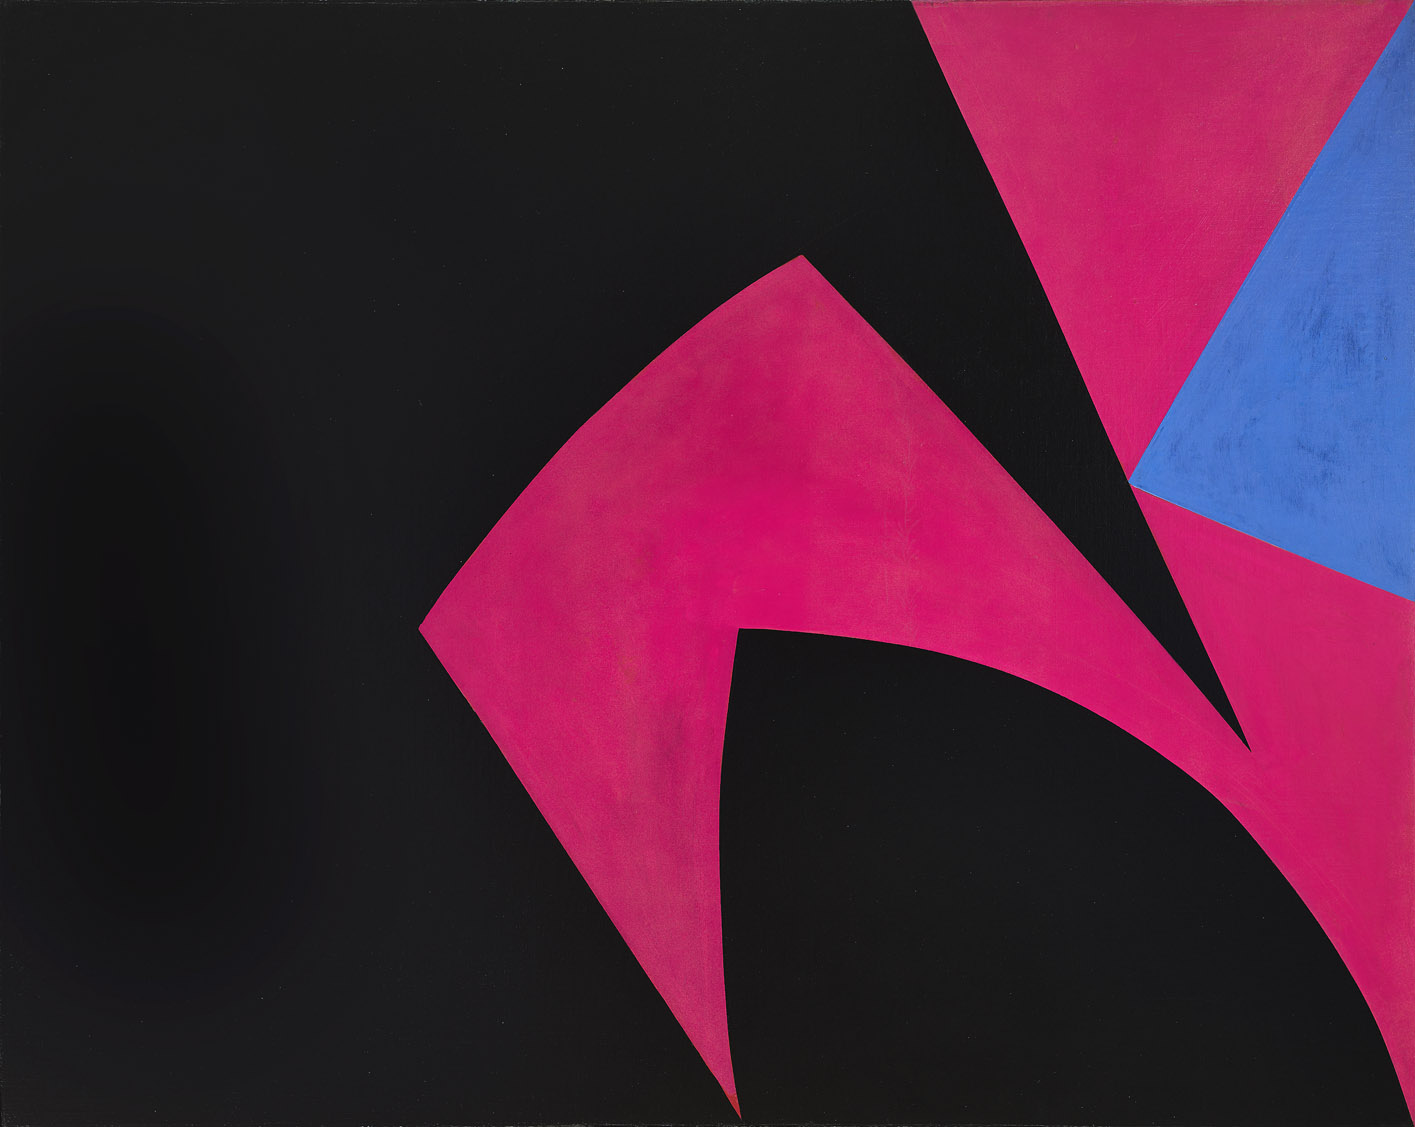 Magical Space Forms (Black, Fuchsia) , 1951  oil on canvas 46 x 58 inches; 116.8 x 147.3 centimeters